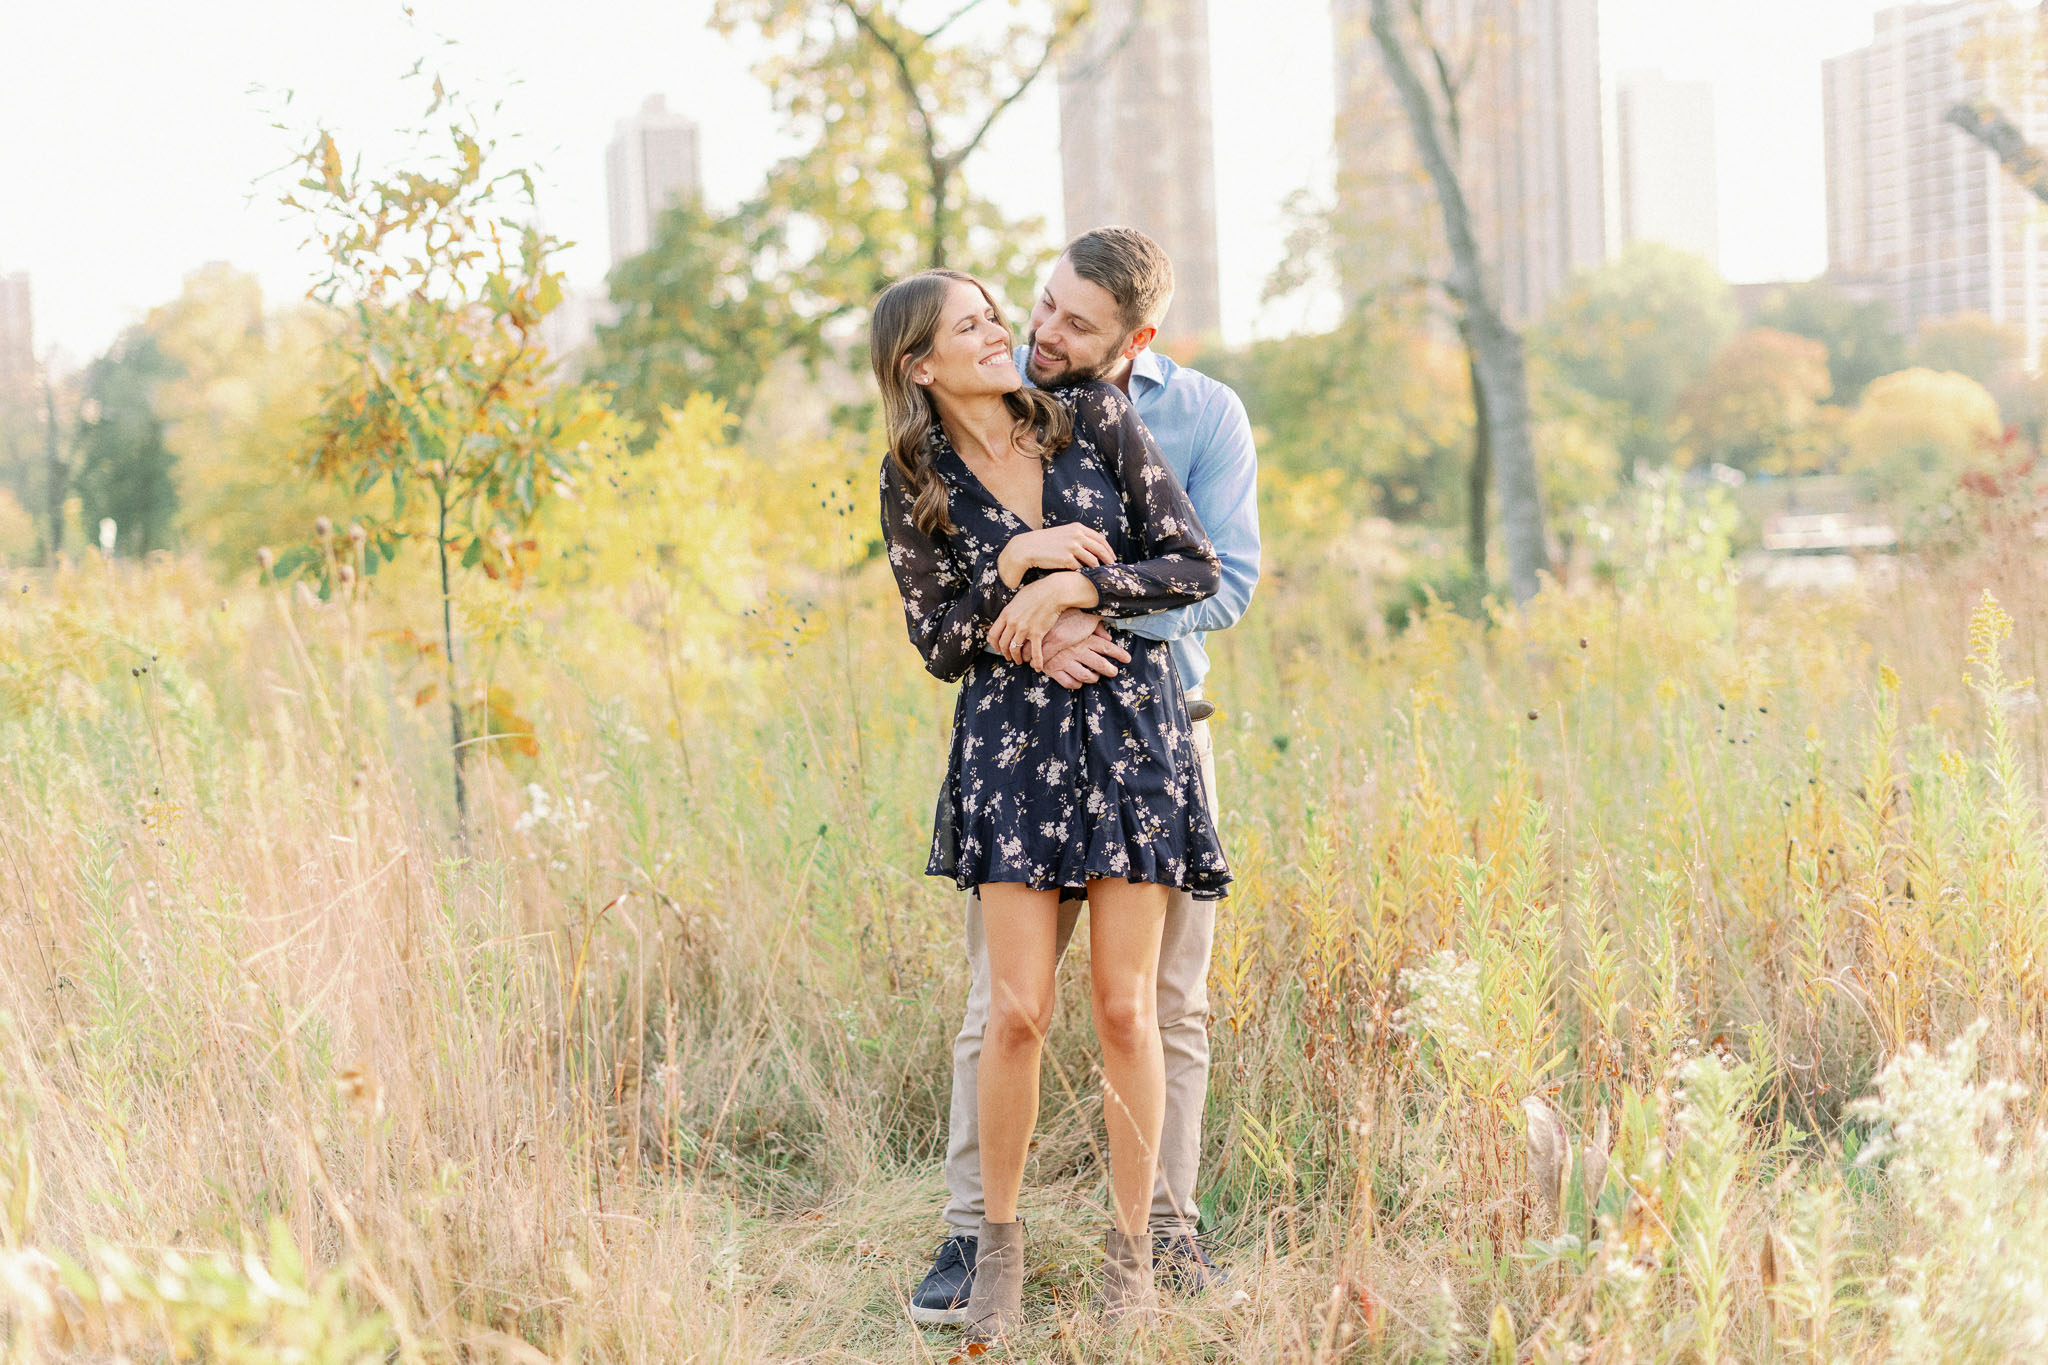 Chicago Fine Art Film Photographer – Lincoln Park Engagement Photos-26